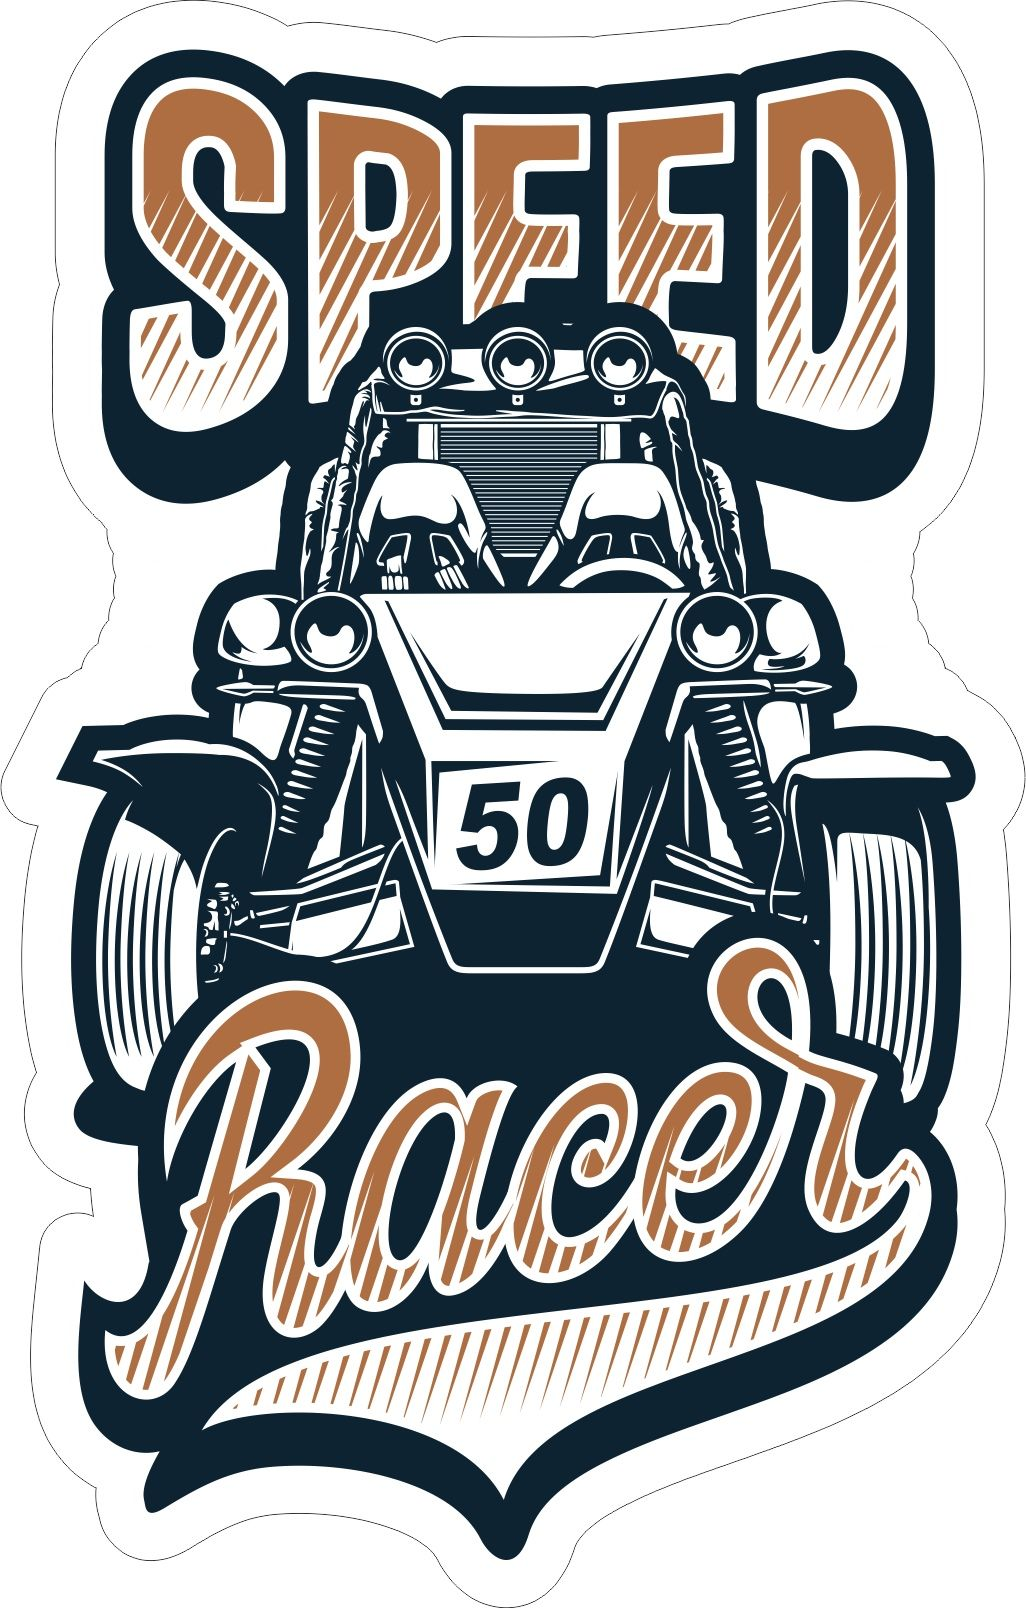 Speed racer sticker wall stickers vector free stickers free t shirt design shirt